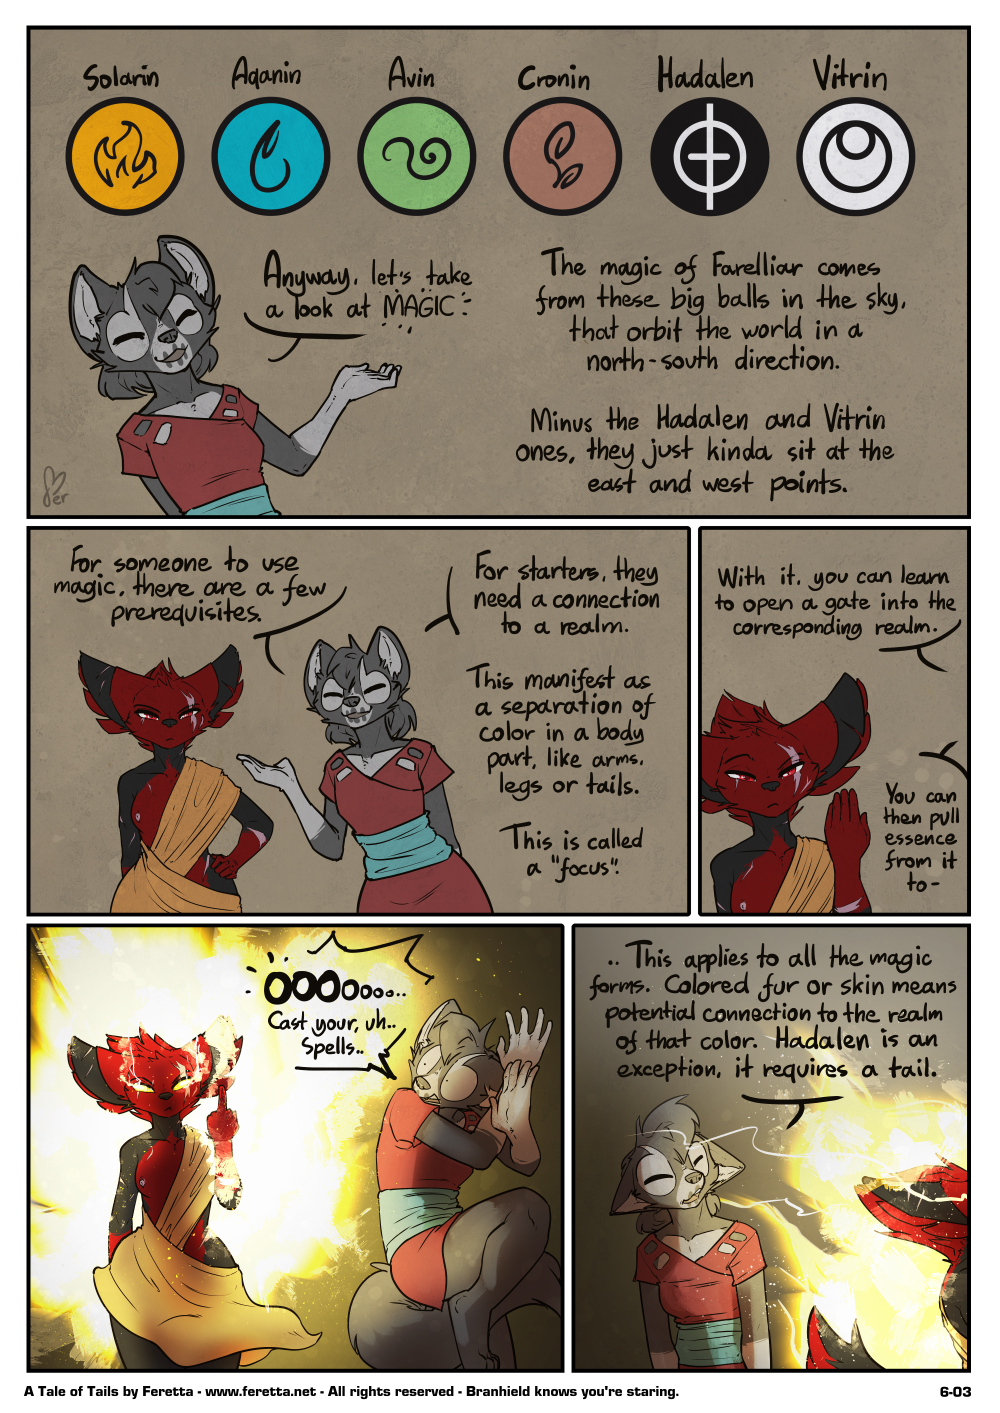 A Tale of Tails, 6-03